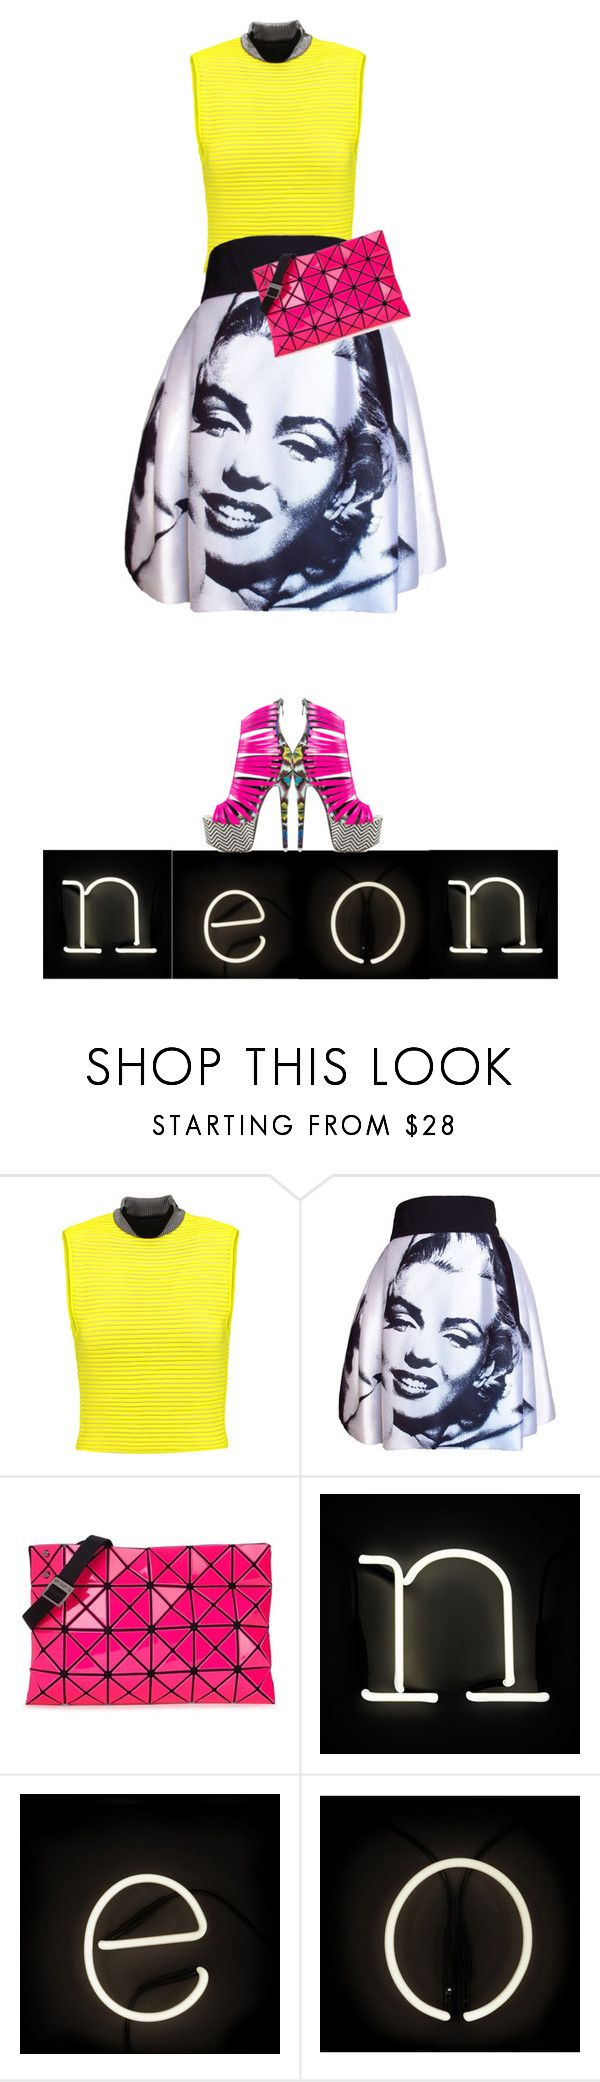 """Neon Marilyn"" by juliehalloran ❤ liked on Polyvore featuring Alexander Wang, Dolce&Gabbana, Bao Bao by Issey Miyake, Seletti and Nelly Bernal"